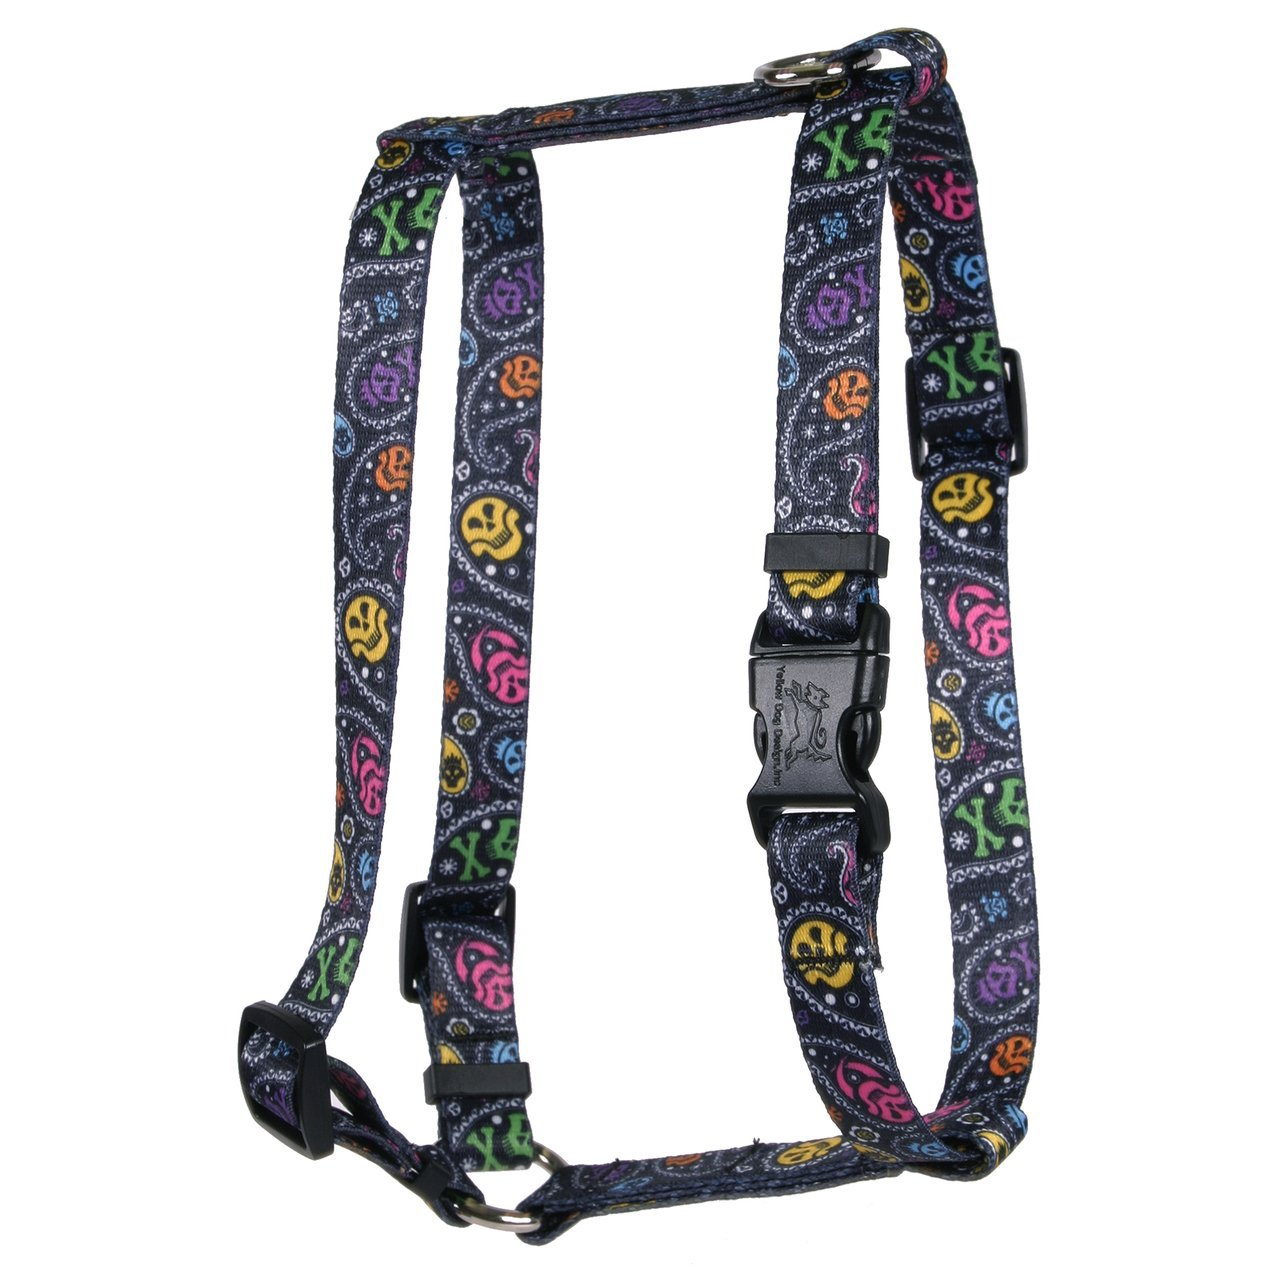 Yellow Dog Design Paisley Skulls Multi Roman Style H Dog Harness, X-Small-3/8 Wide fits Chest of 8 to 14''